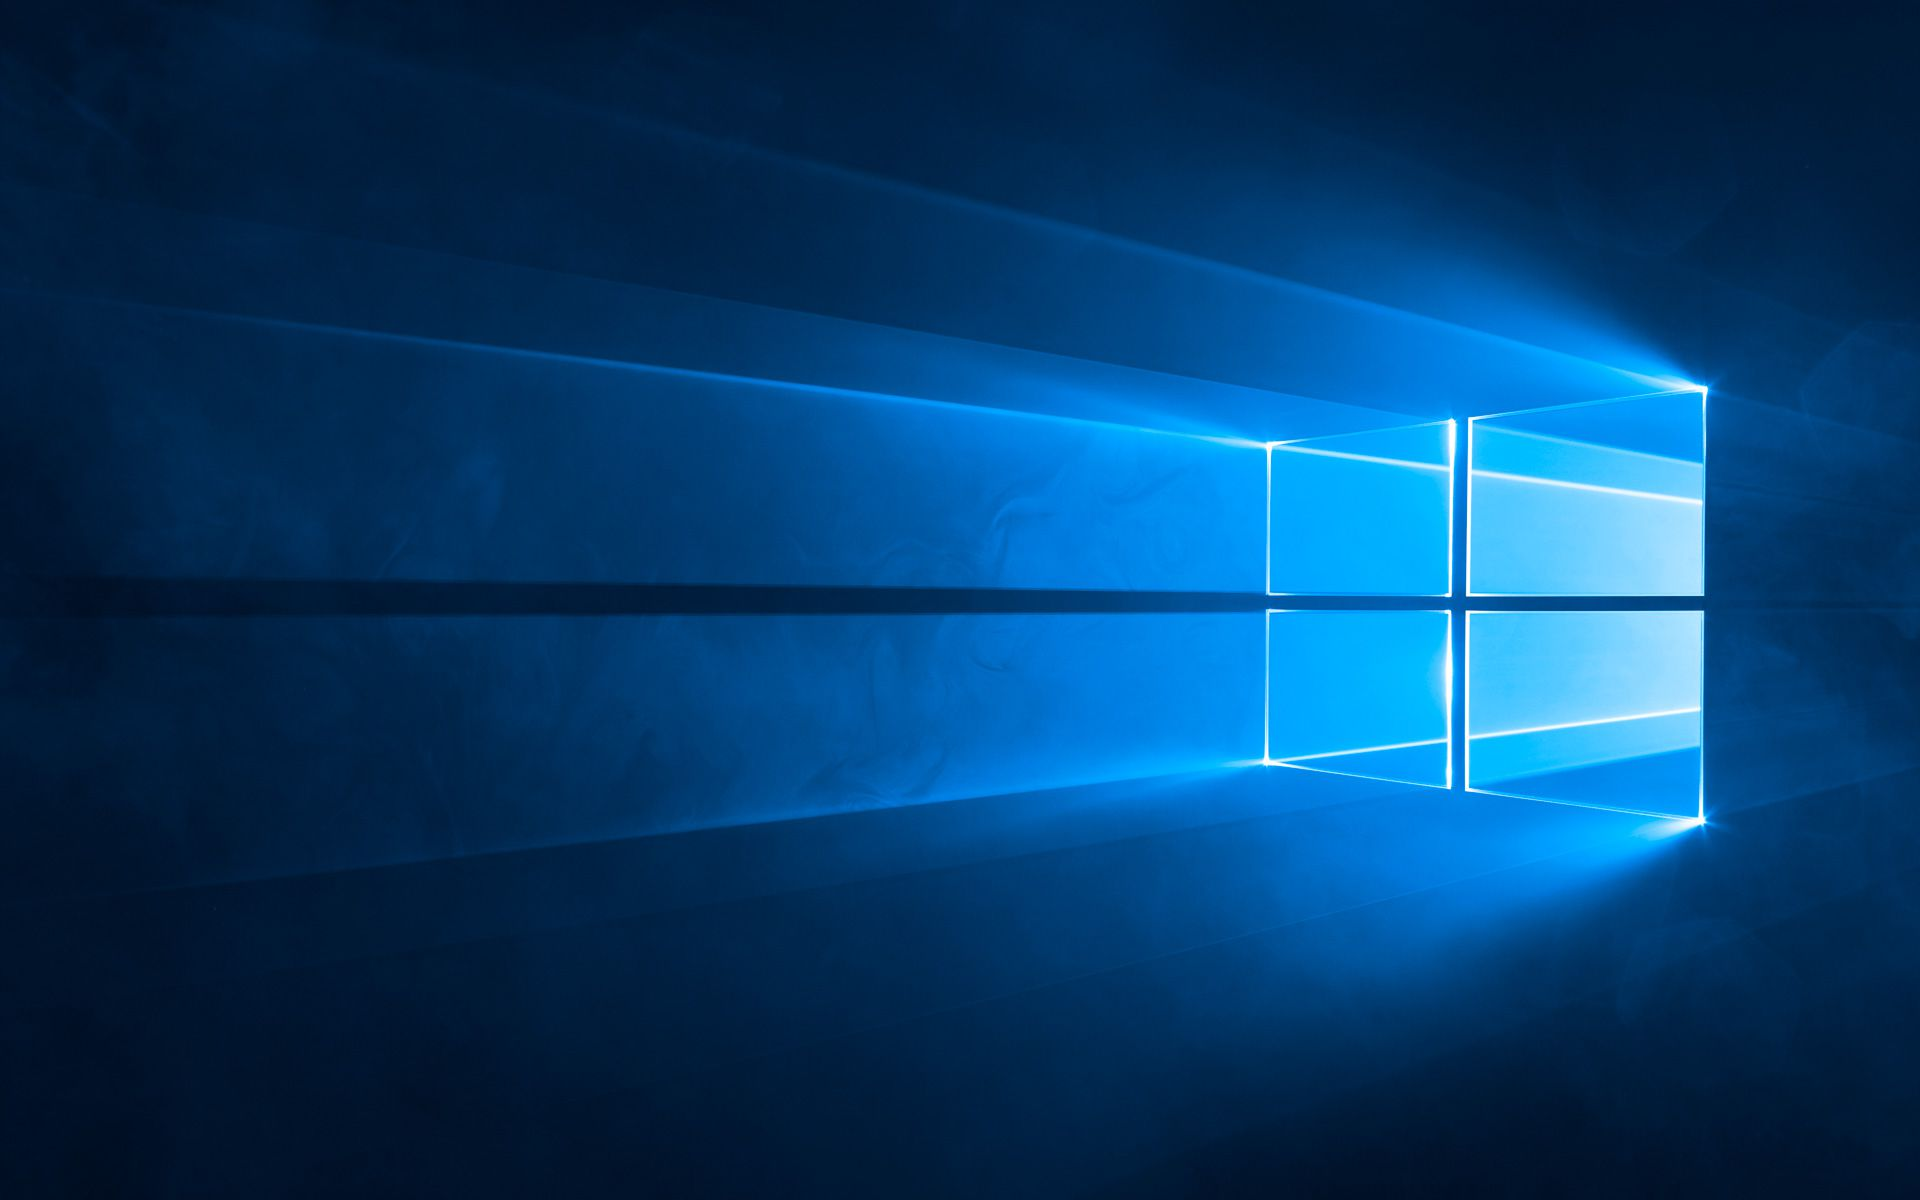 Windows 10 default background